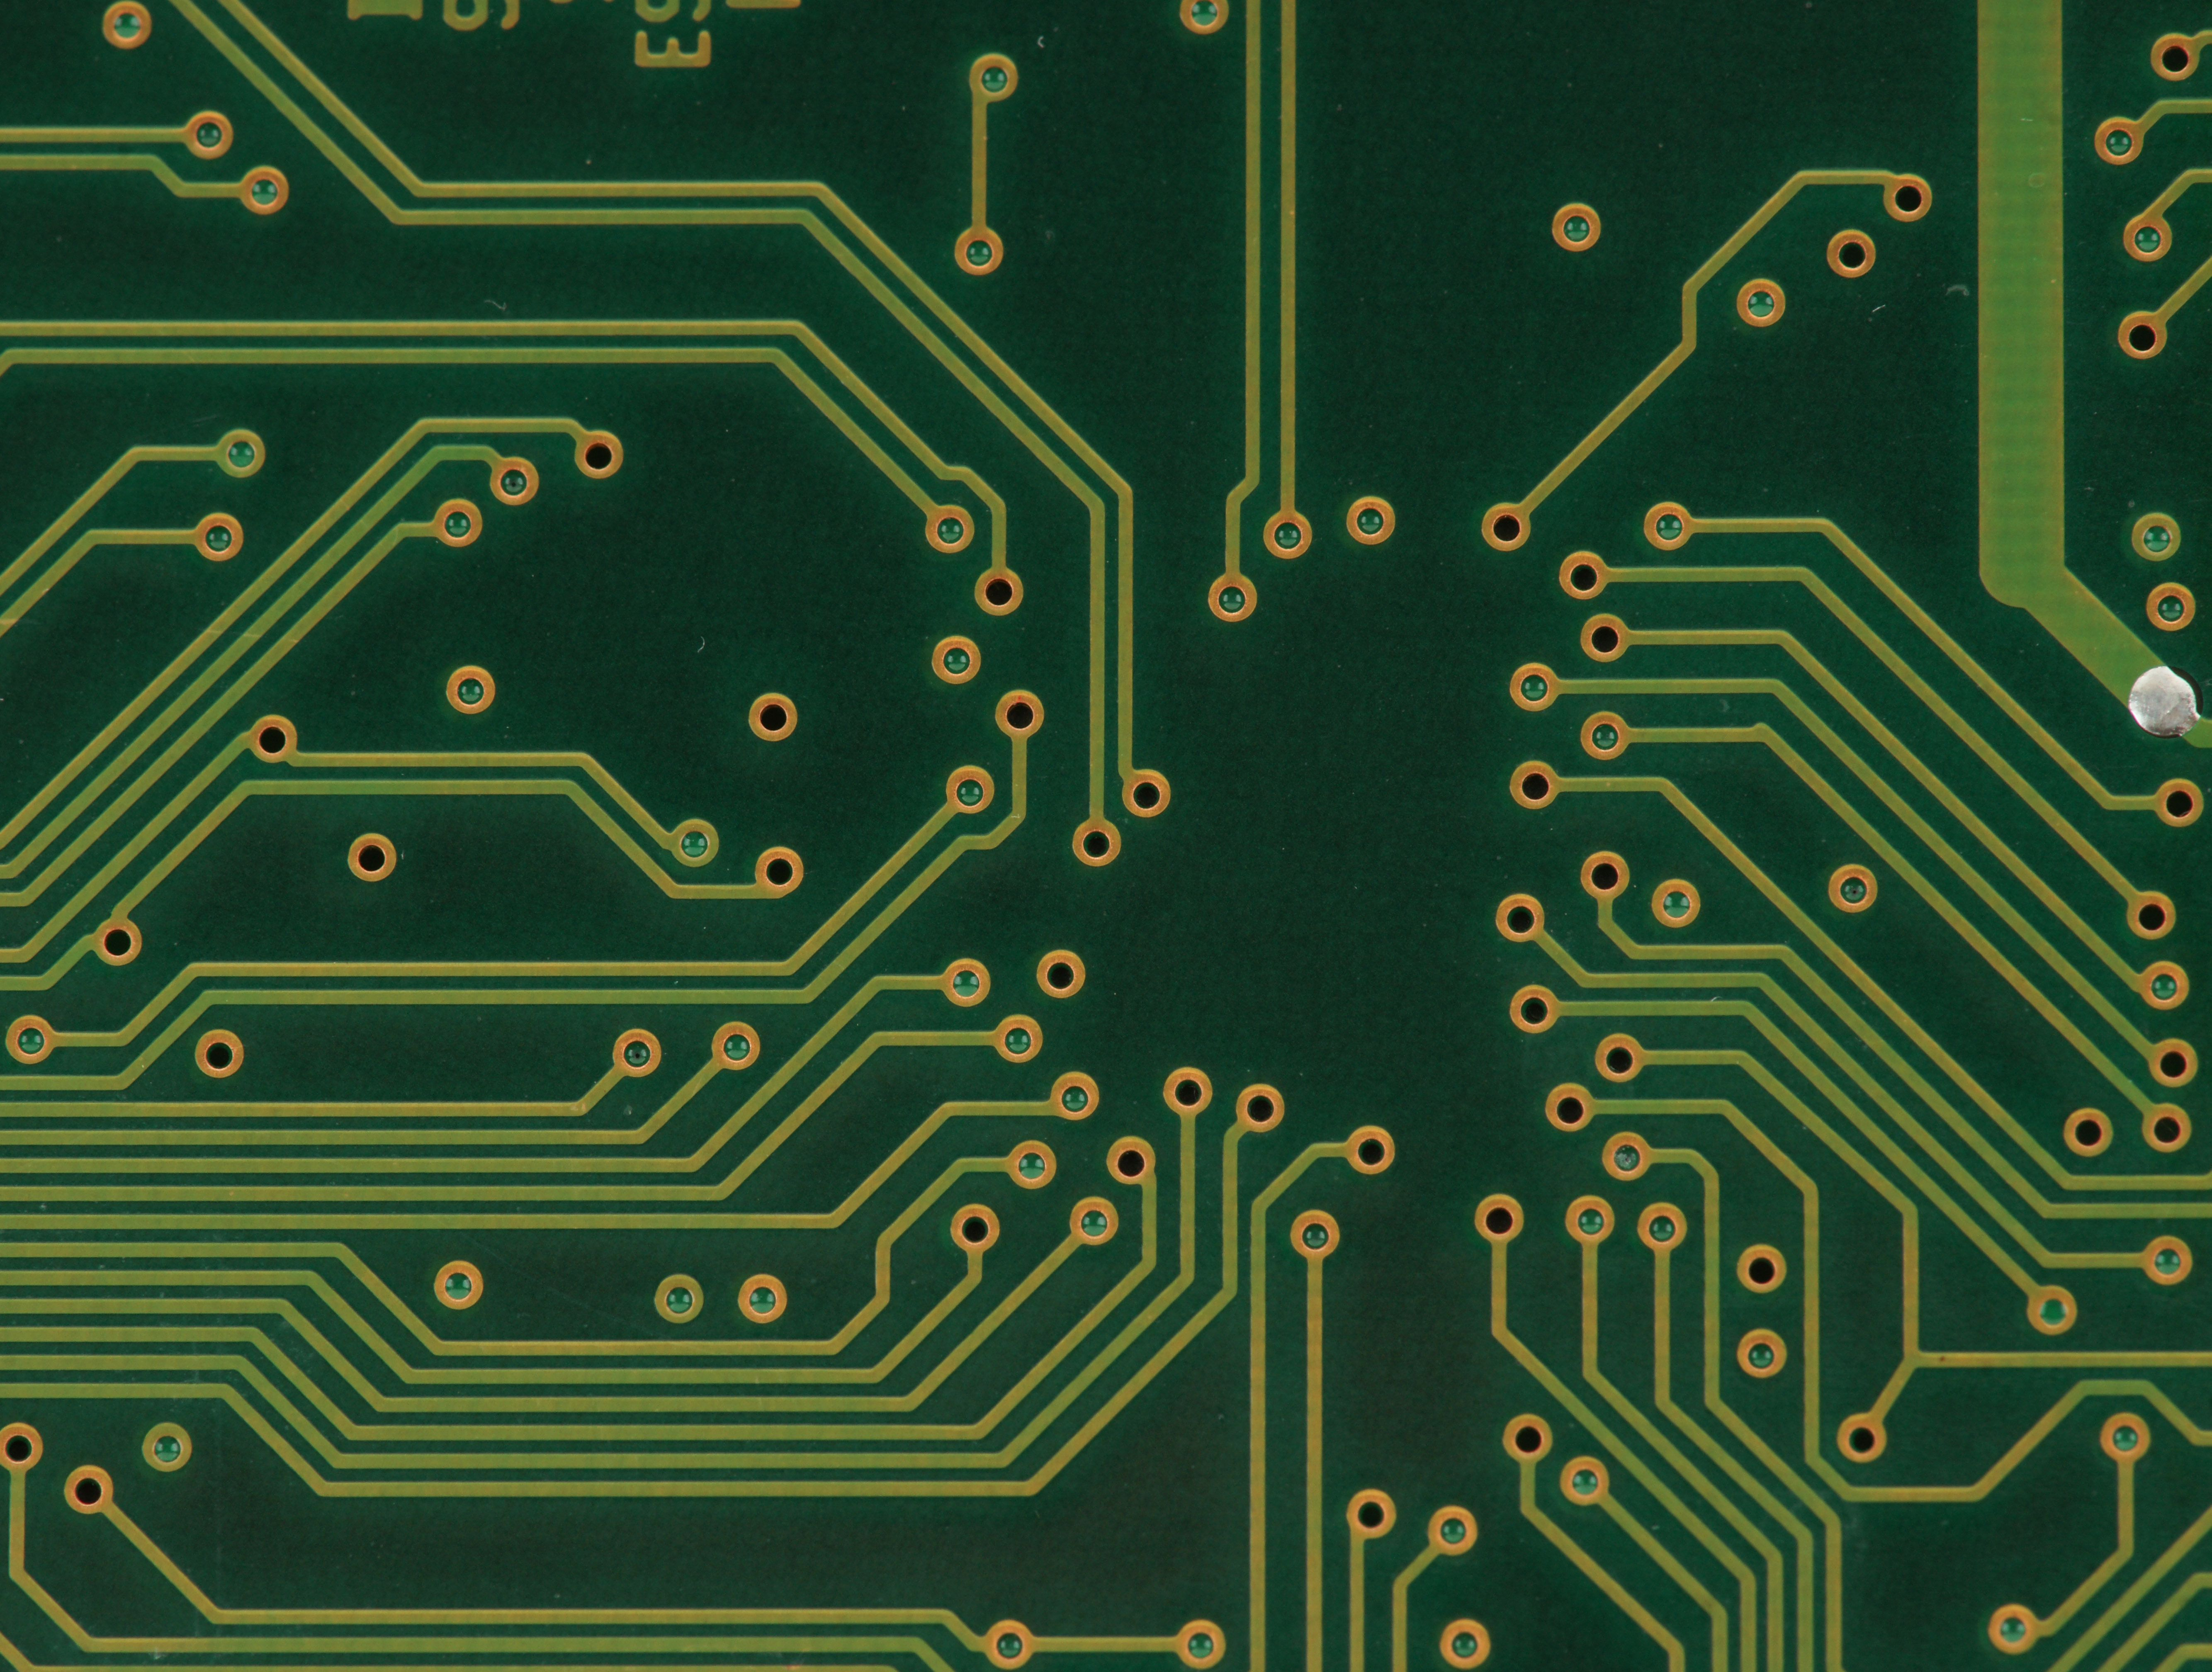 circuit-board-background